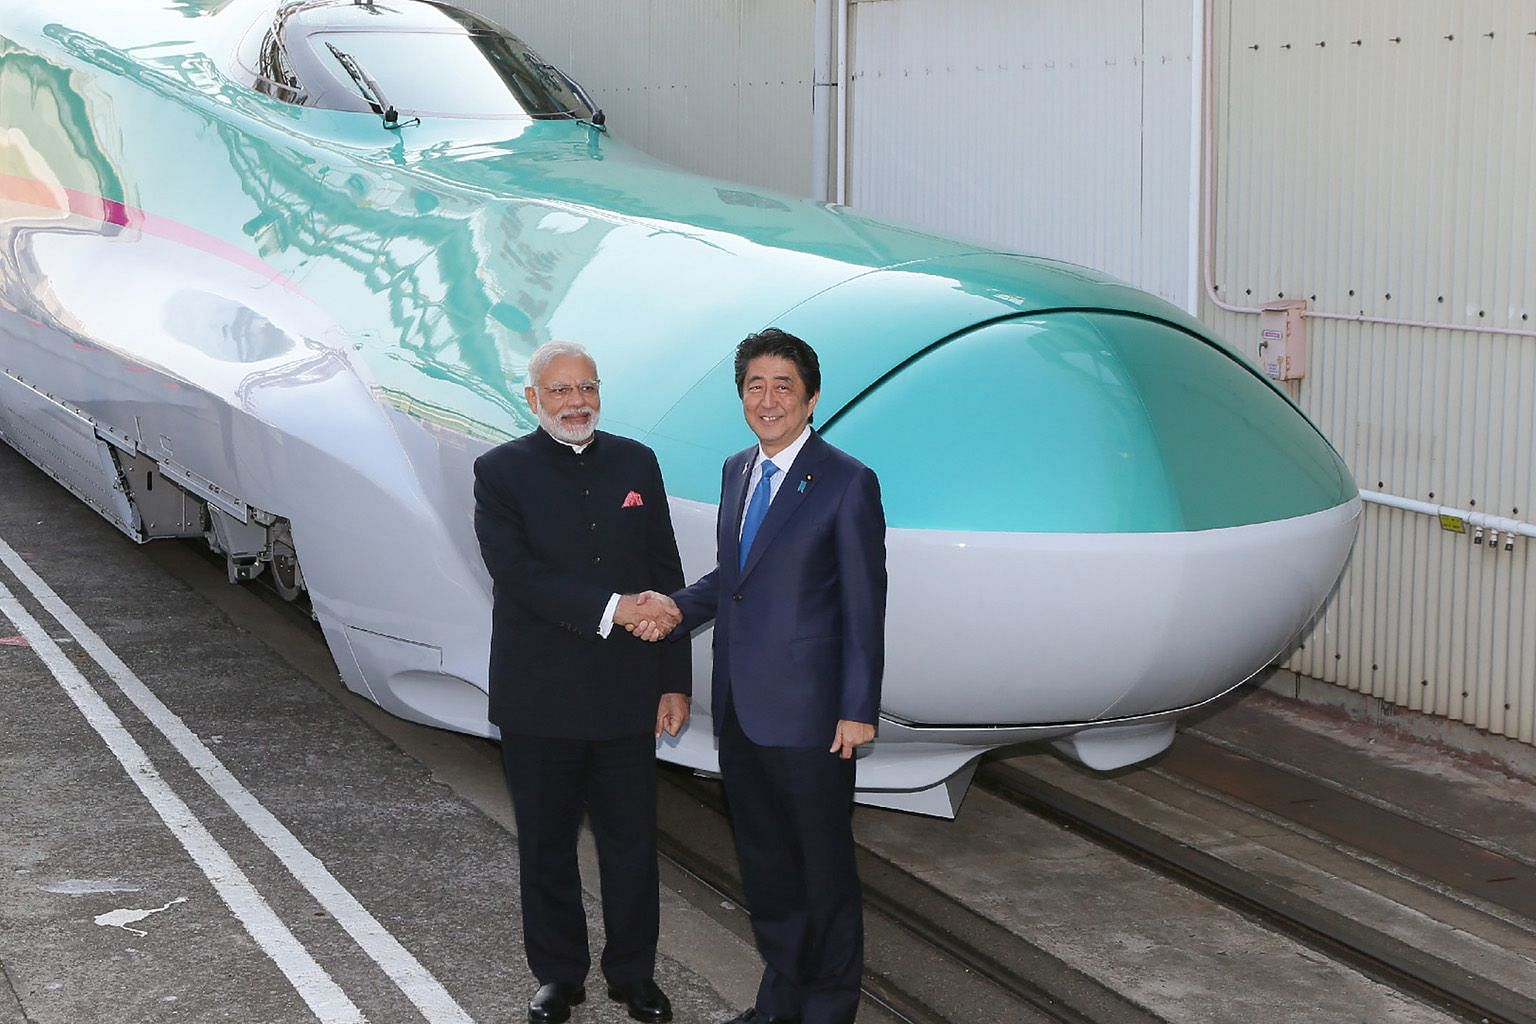 Indian Prime Minister Narendra Modi and his Japanese counterpart Shinzo Abe with a shinkansen train in Kobe, Japan, in this 2016 picture. India's high-speed rail project is developed with the Japanese.